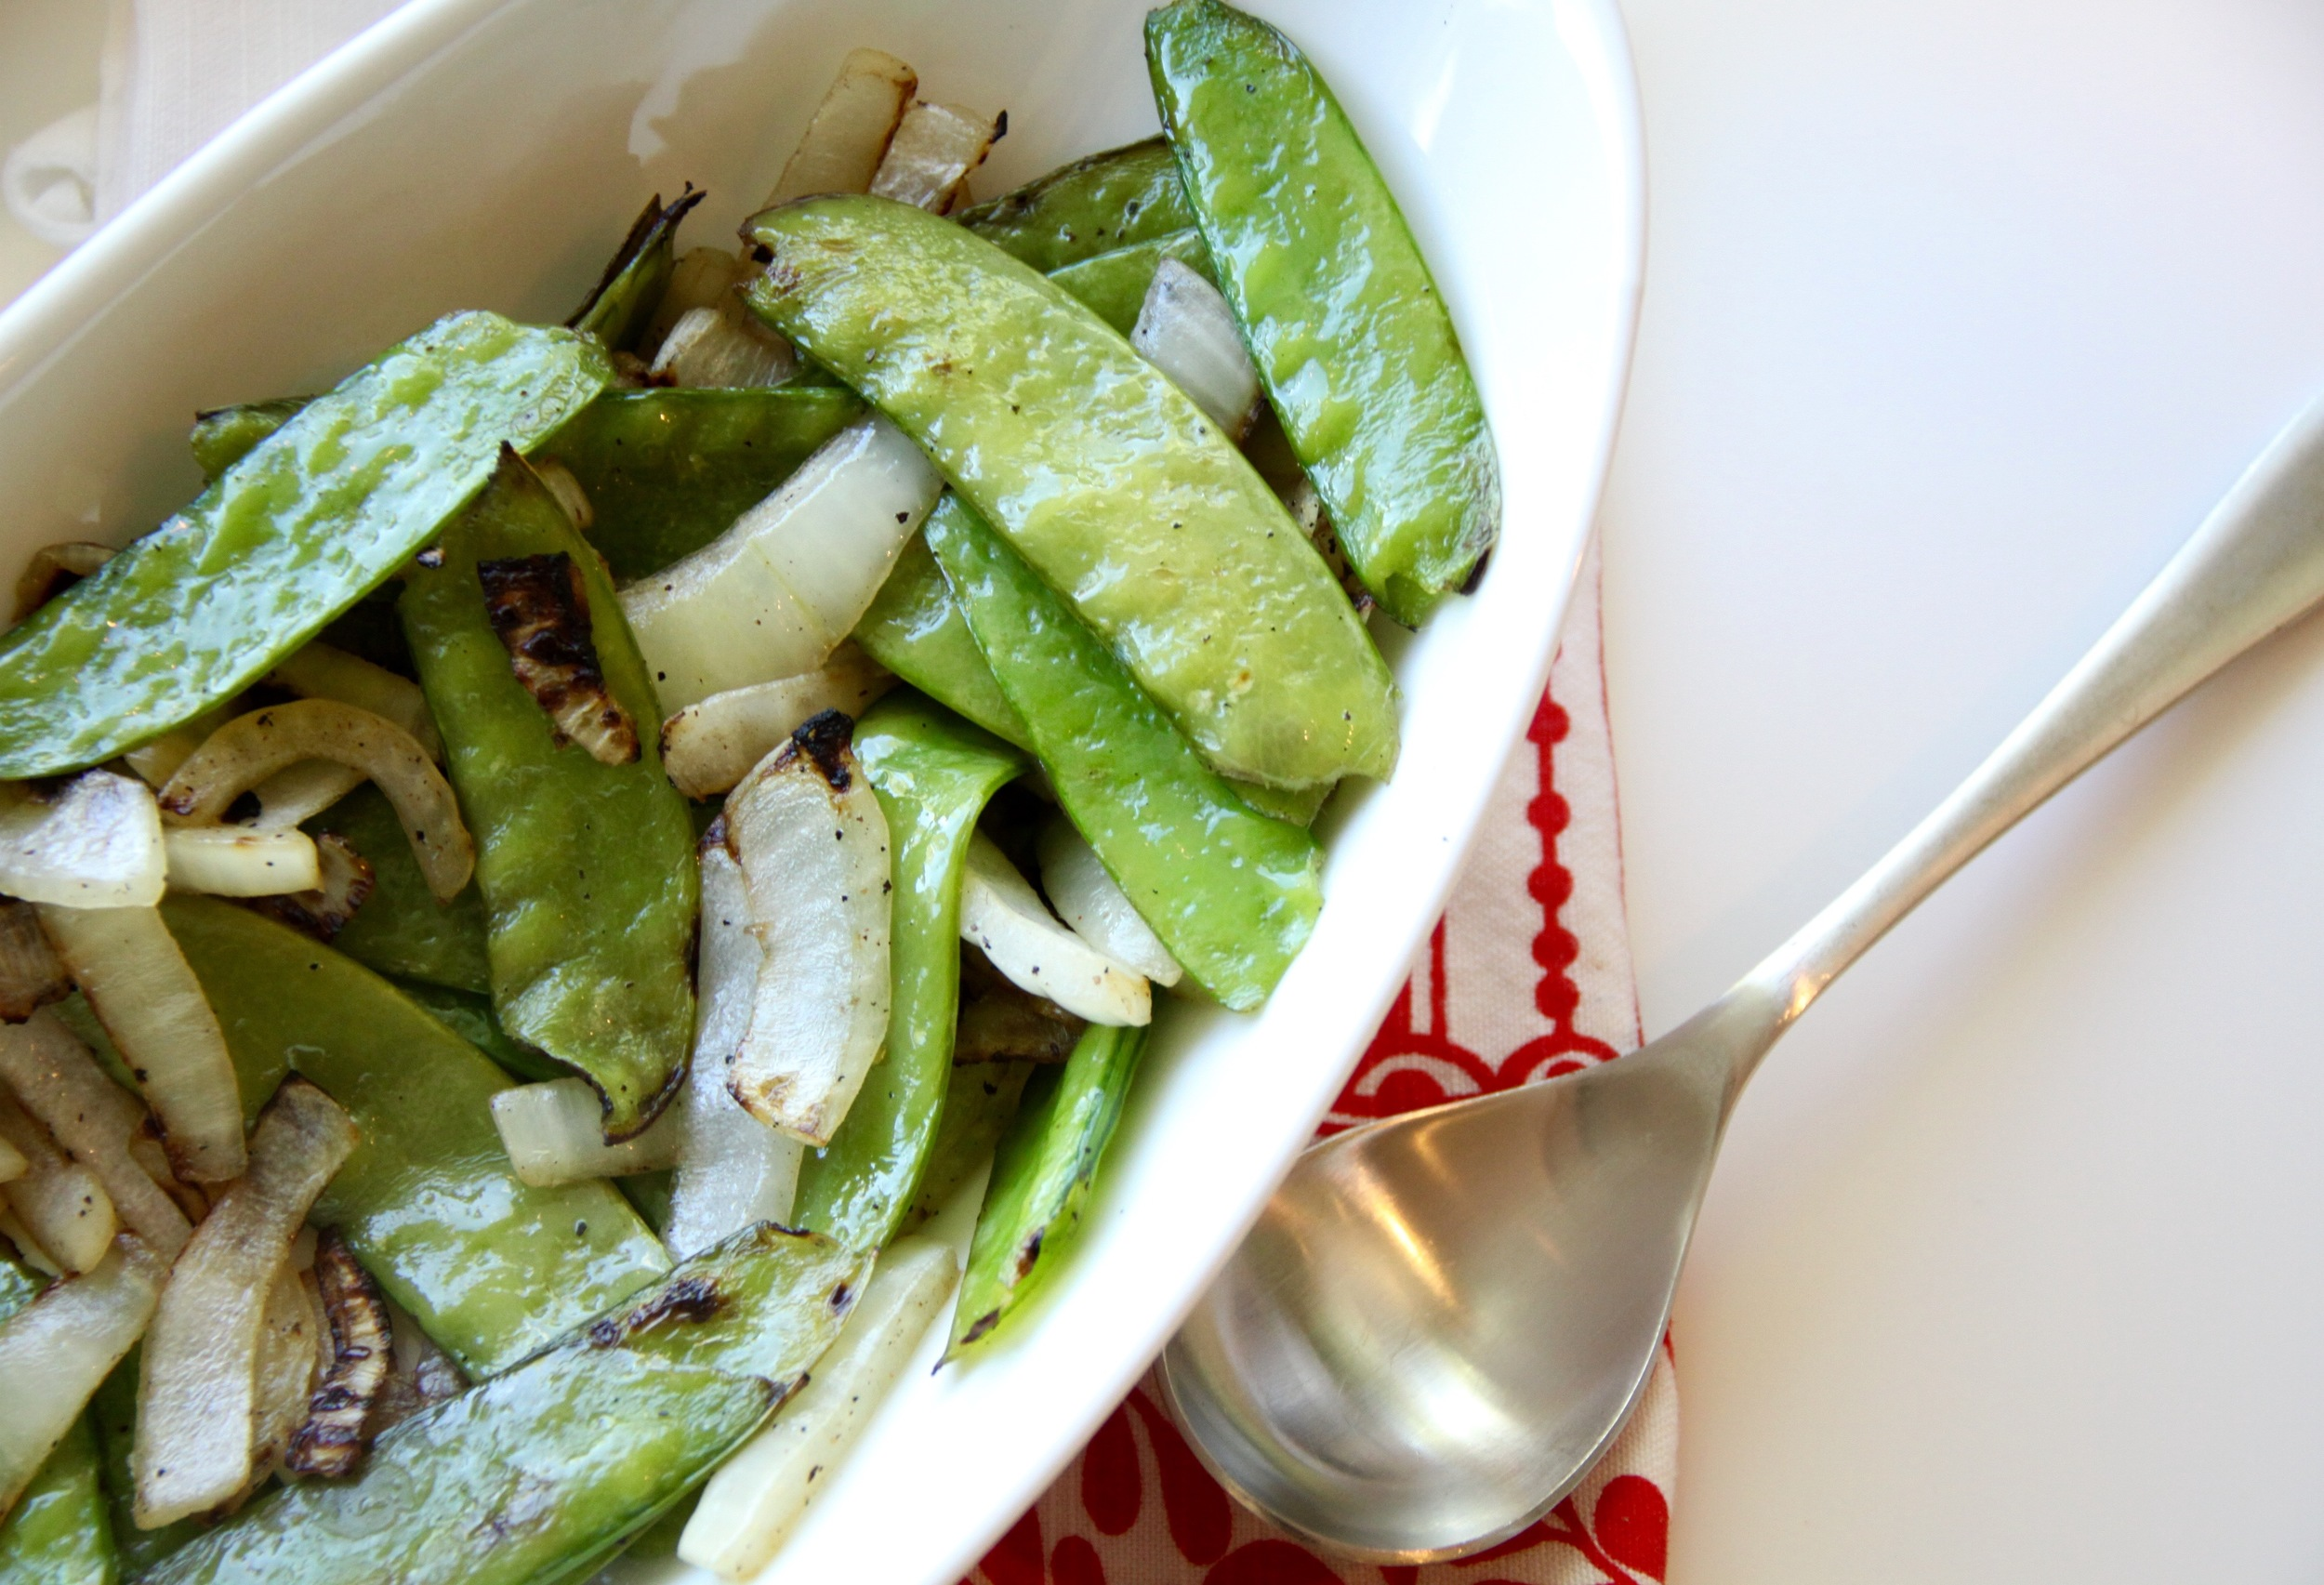 grilled snow peas and onions